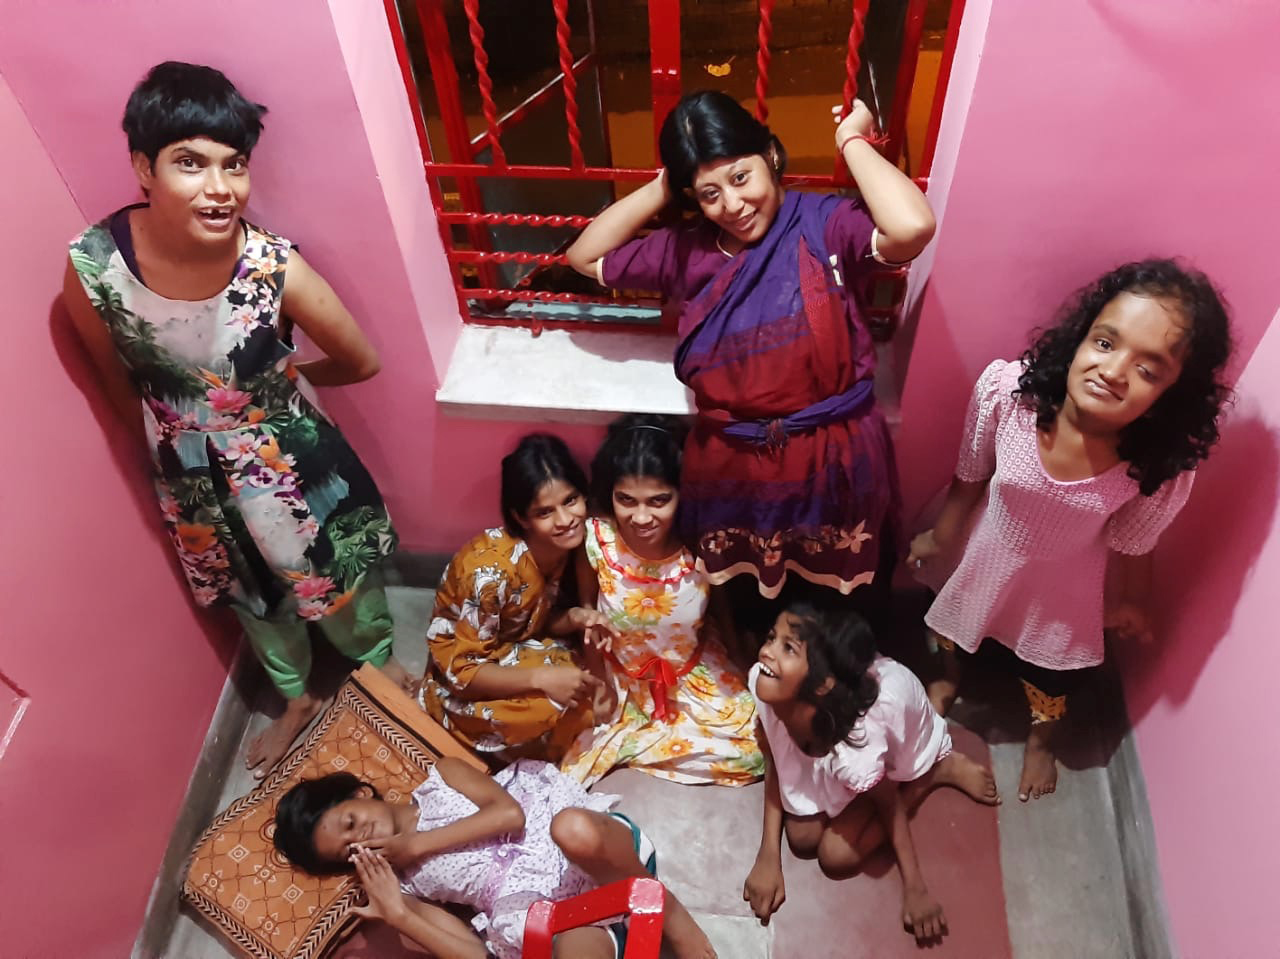 shuktara - the girls of Lula Bari